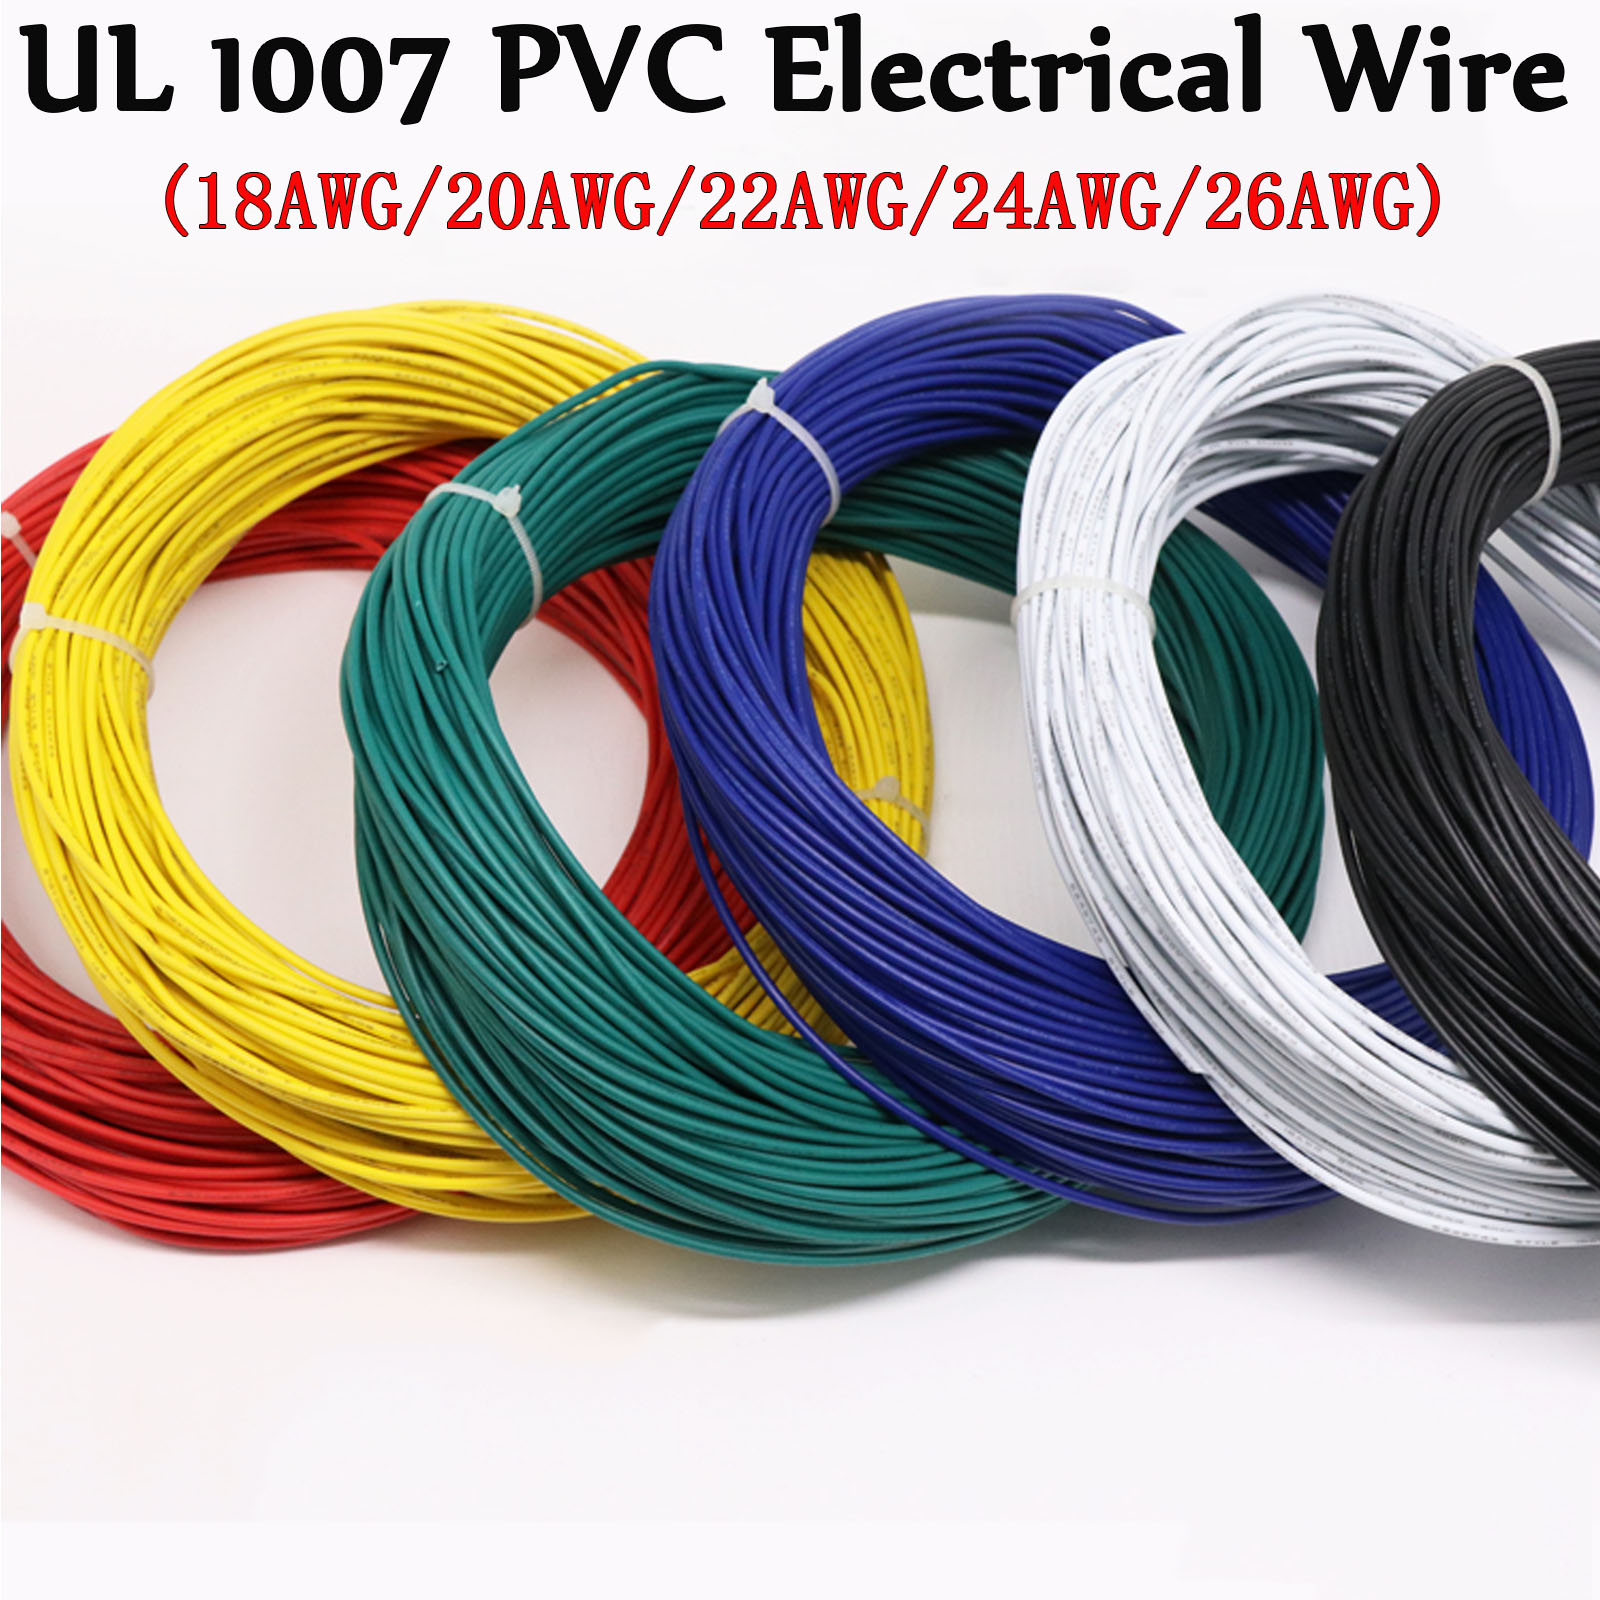 10 Meter PVC UL1007 Electrical Wire Cable 26//24//22//20//18AWG Copper Stranded Line